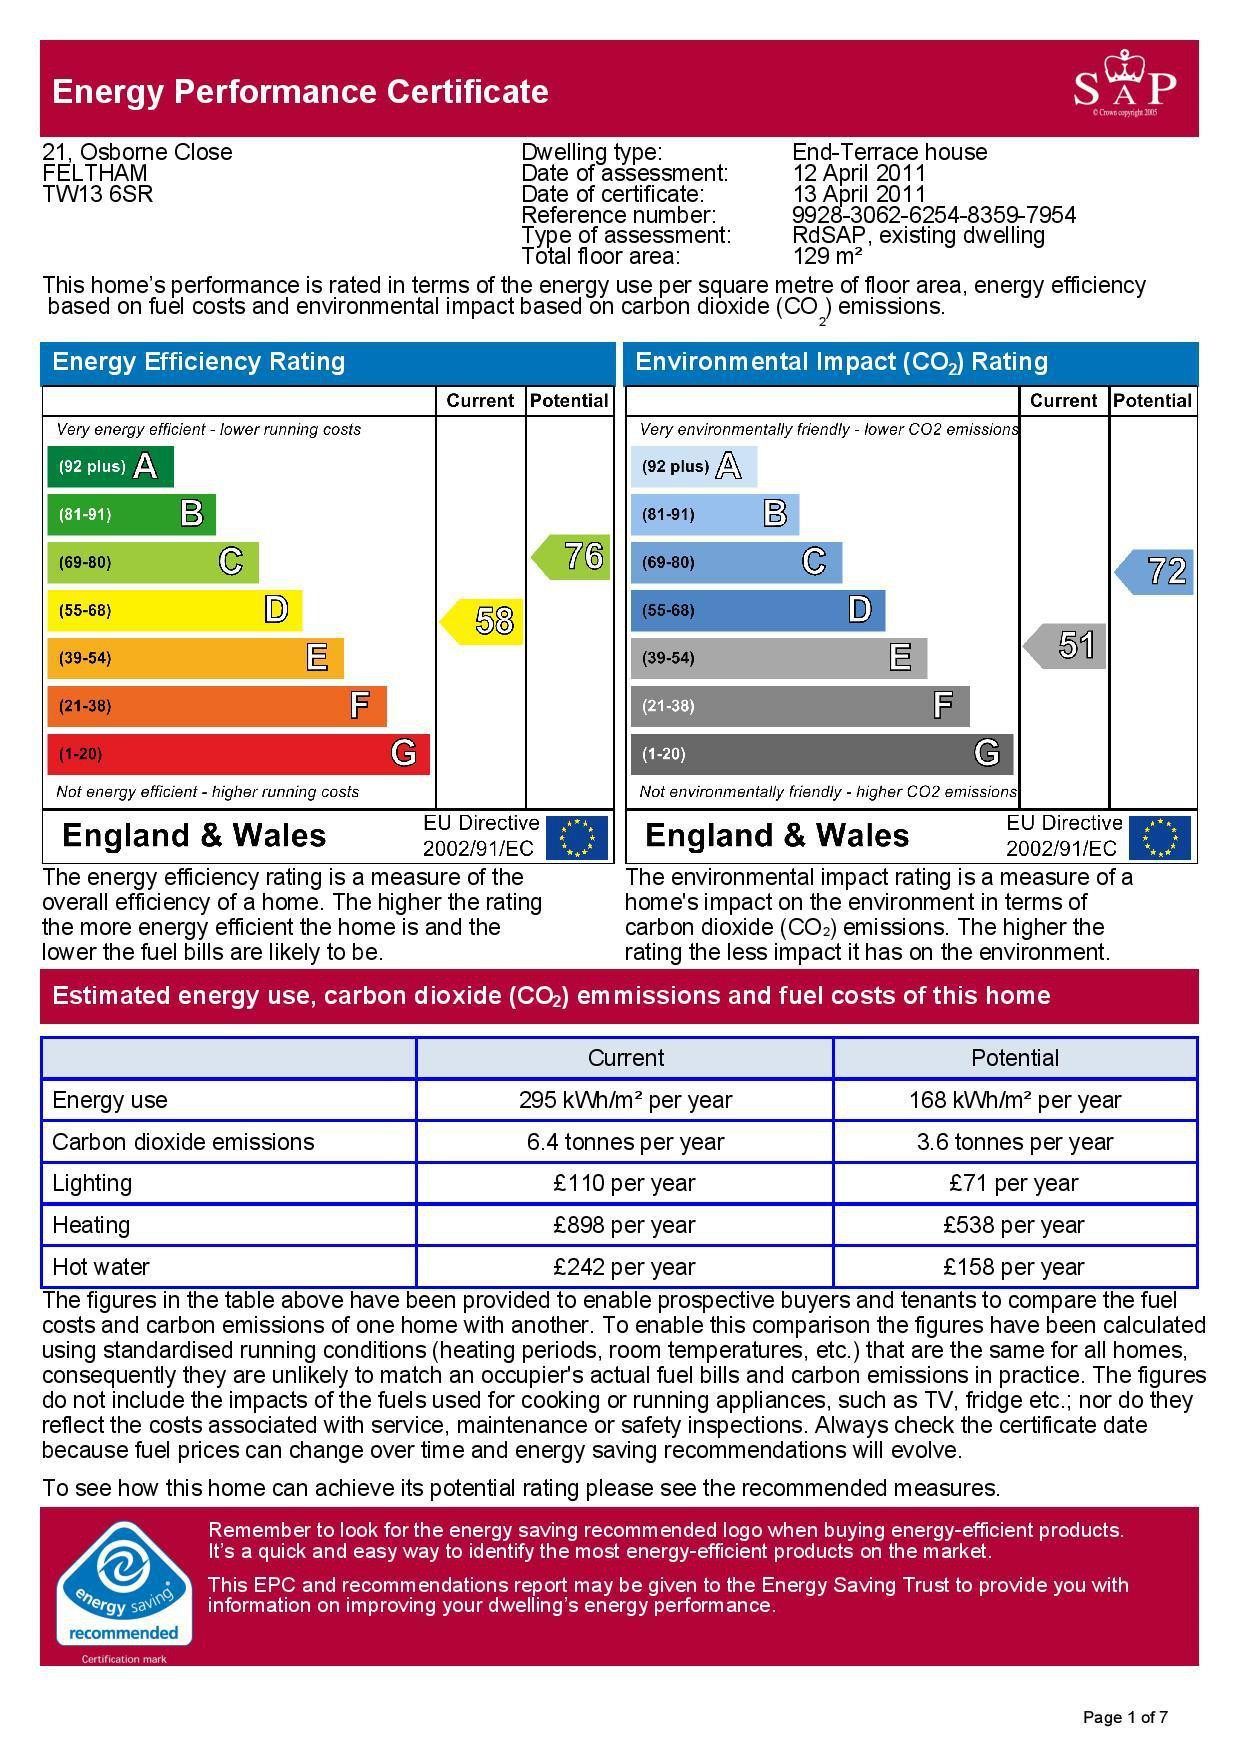 EPC Graph for 21 Osborne Close, Hanworth, Middlesex TW13 6SR